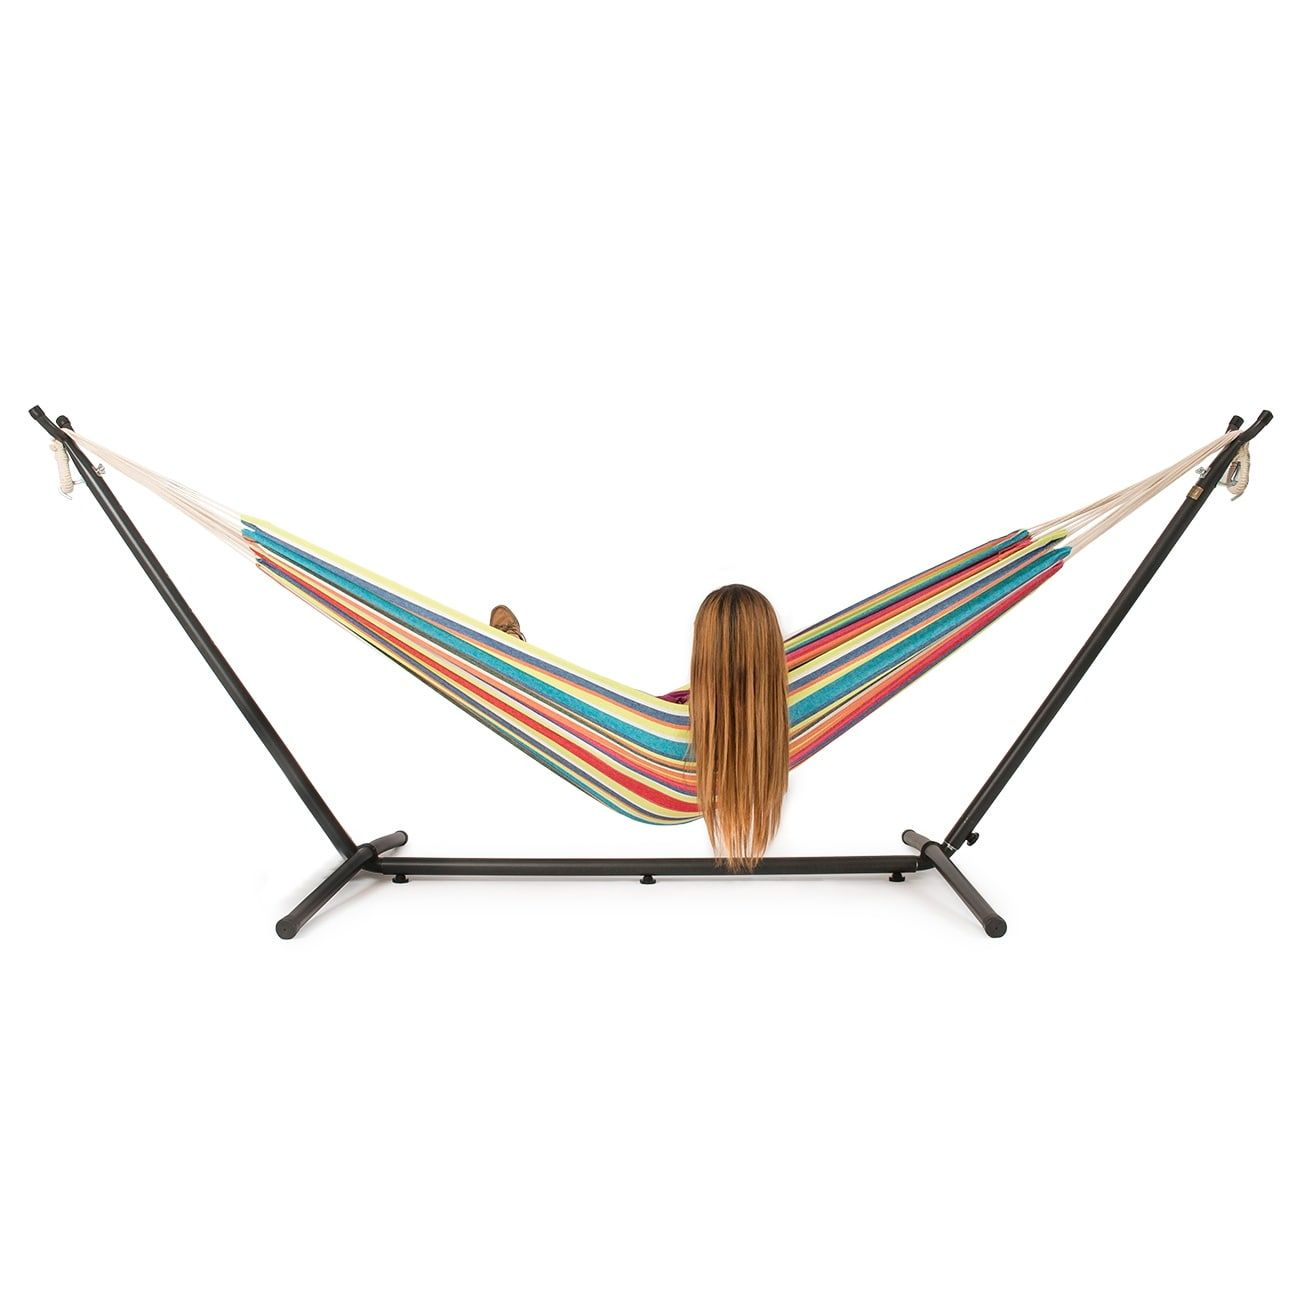 belleze 10ft double hammock stand with carrying case kit  tropical  multi   belleze 10ft double hammock stand with carrying case kit      rh   pinterest